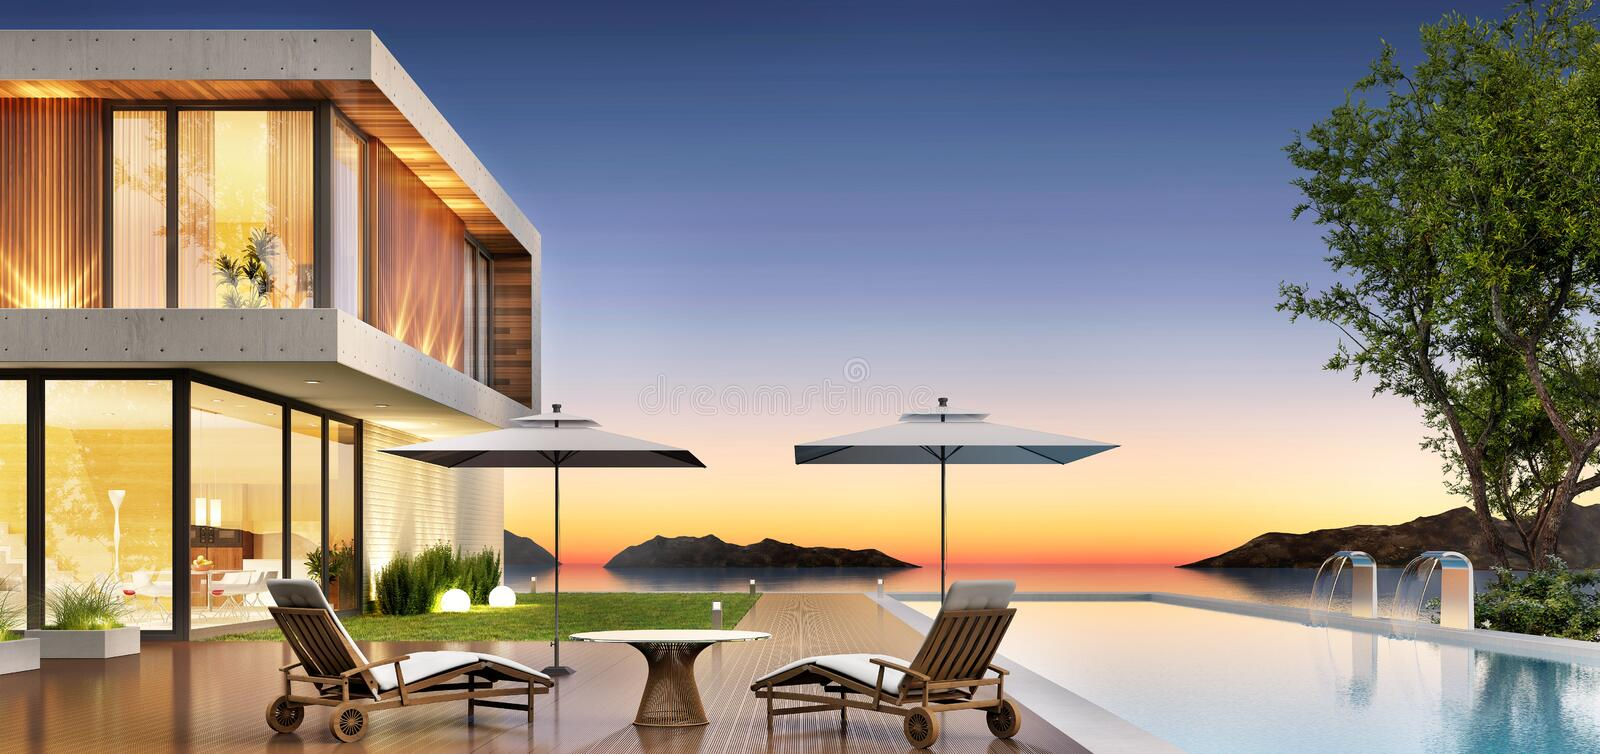 Luxury house with pool and terrace for relaxing stock images